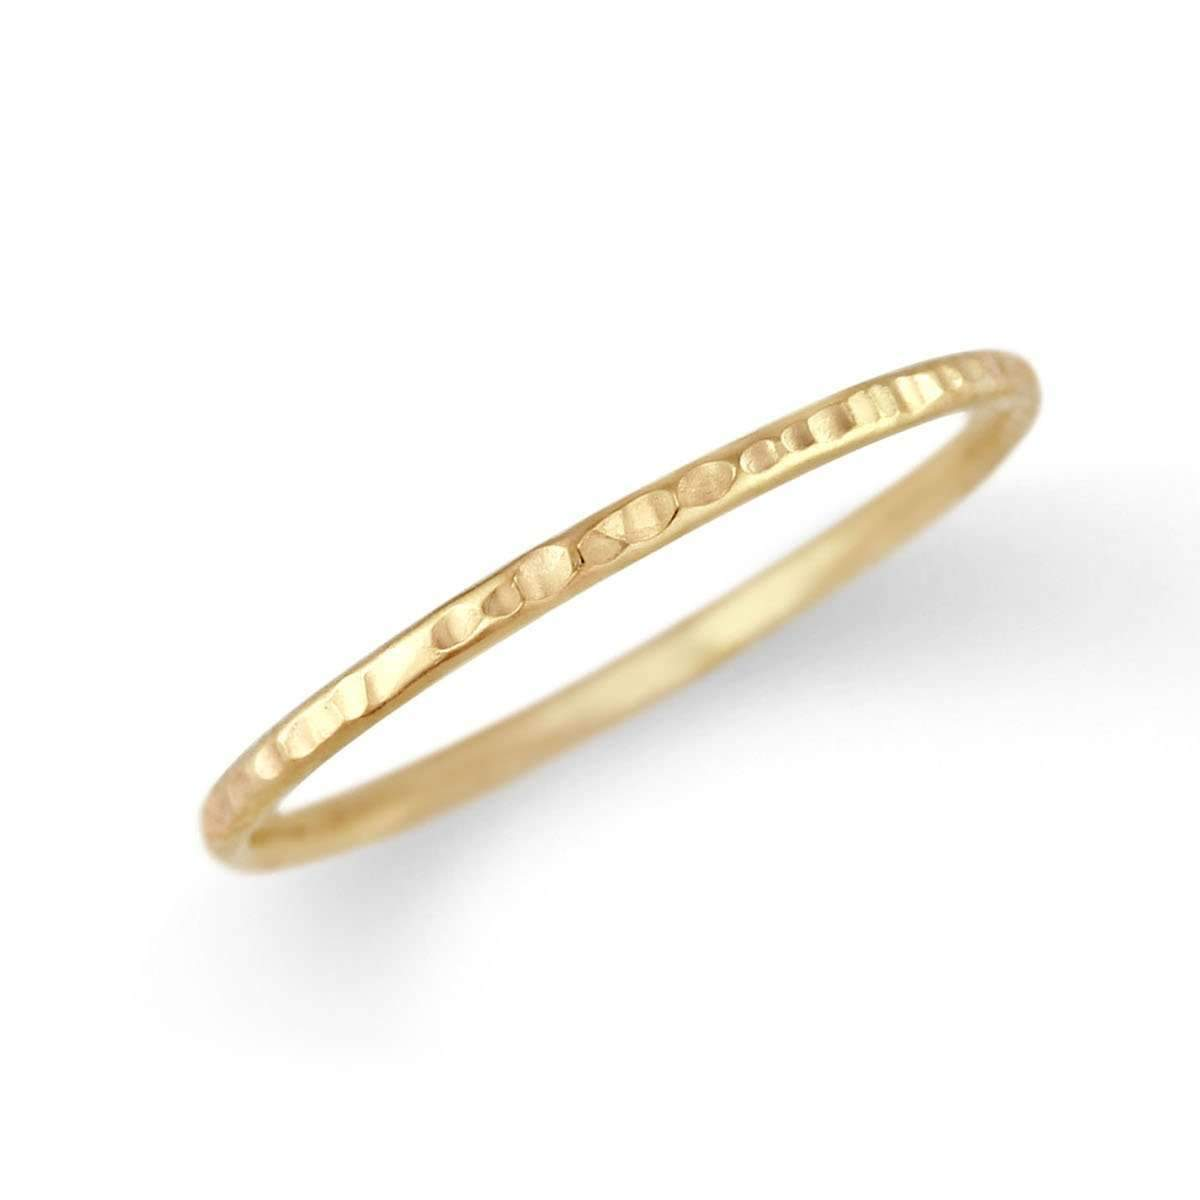 Petite Hammer Texture Ring Band-Alysha Whitfield